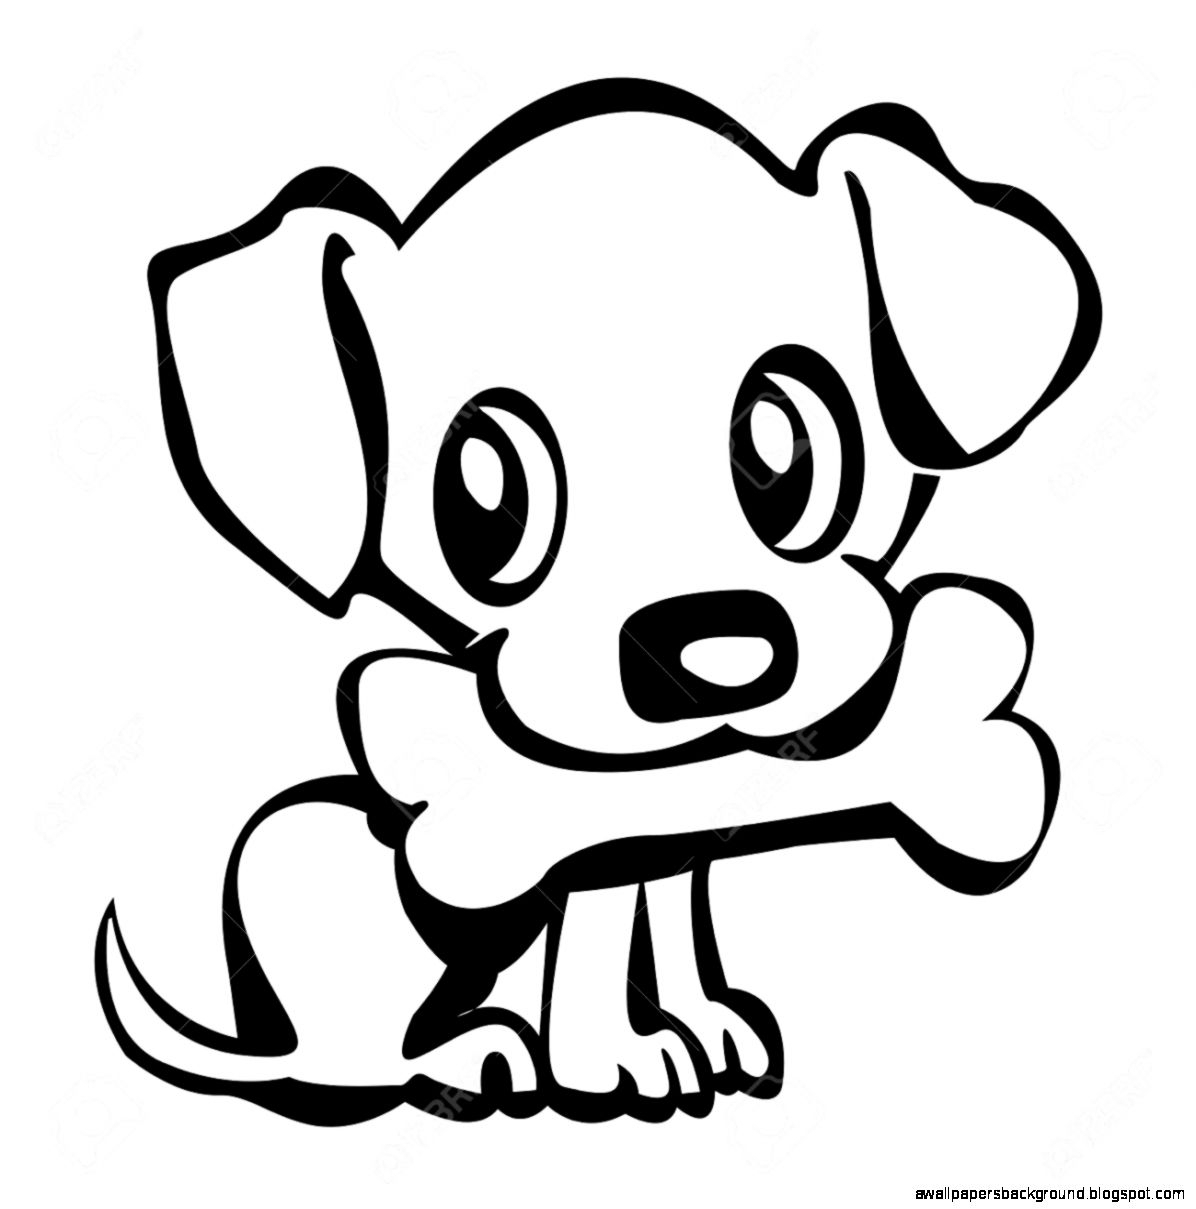 Dog Face Cartoon Drawing | Free download best Dog Face